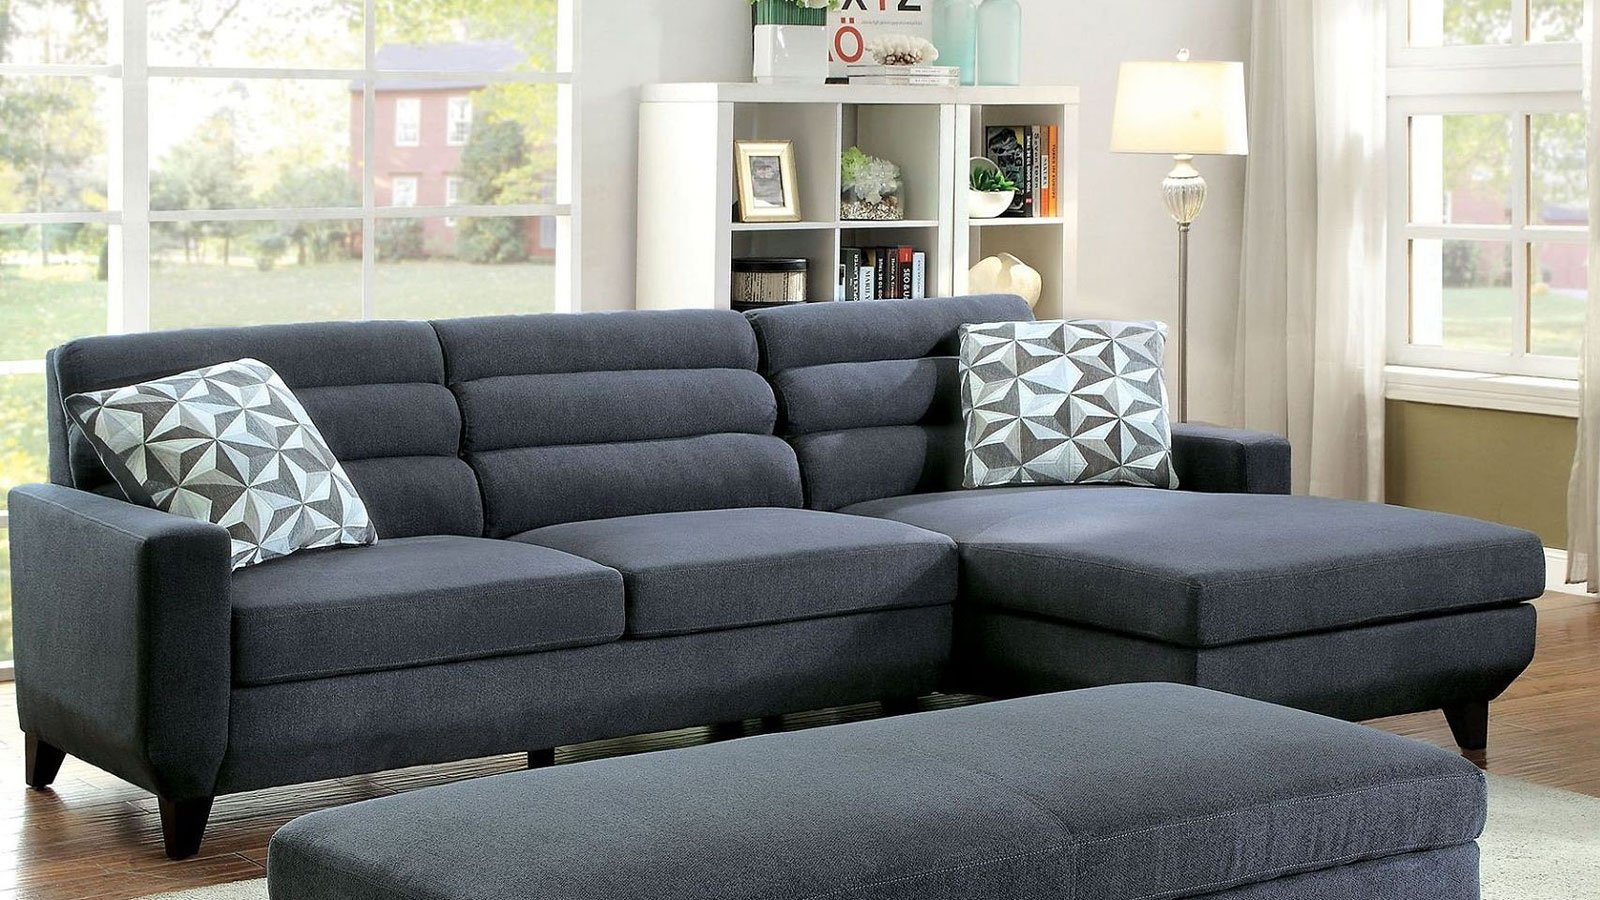 Jensen Sofa Bed Next Jensen Sectional W Pillows